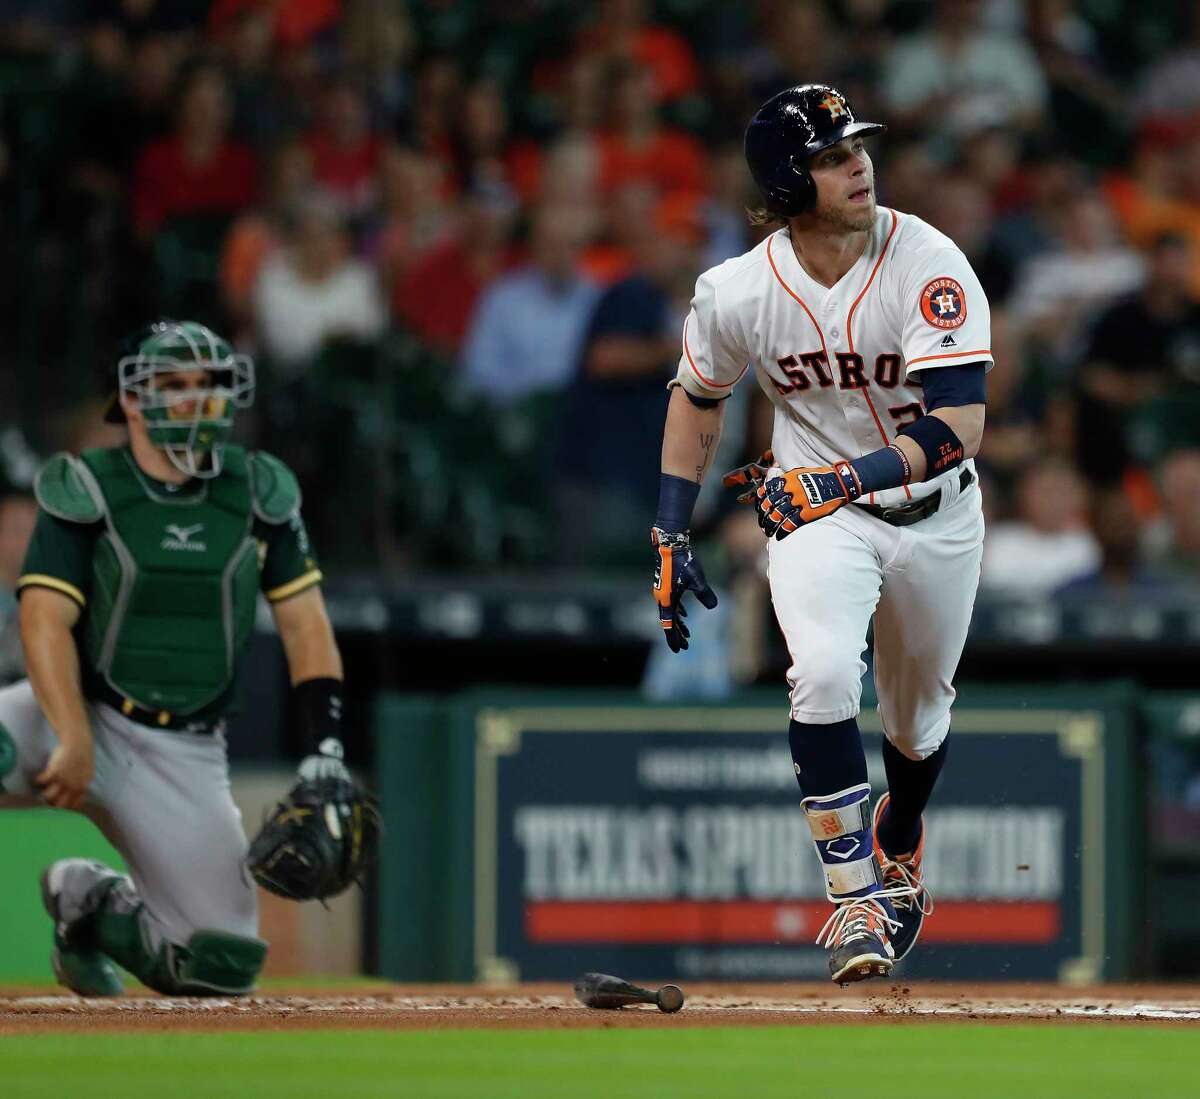 Houston Astros Josh Reddick (22) watches his ball head to the right field wall as Oakland Athletics right fielder Matt Joyce jumped up to haul it in during the first inning of an MLB baseball game at Minute Maid Park, Thursday, June, 29, 2017.